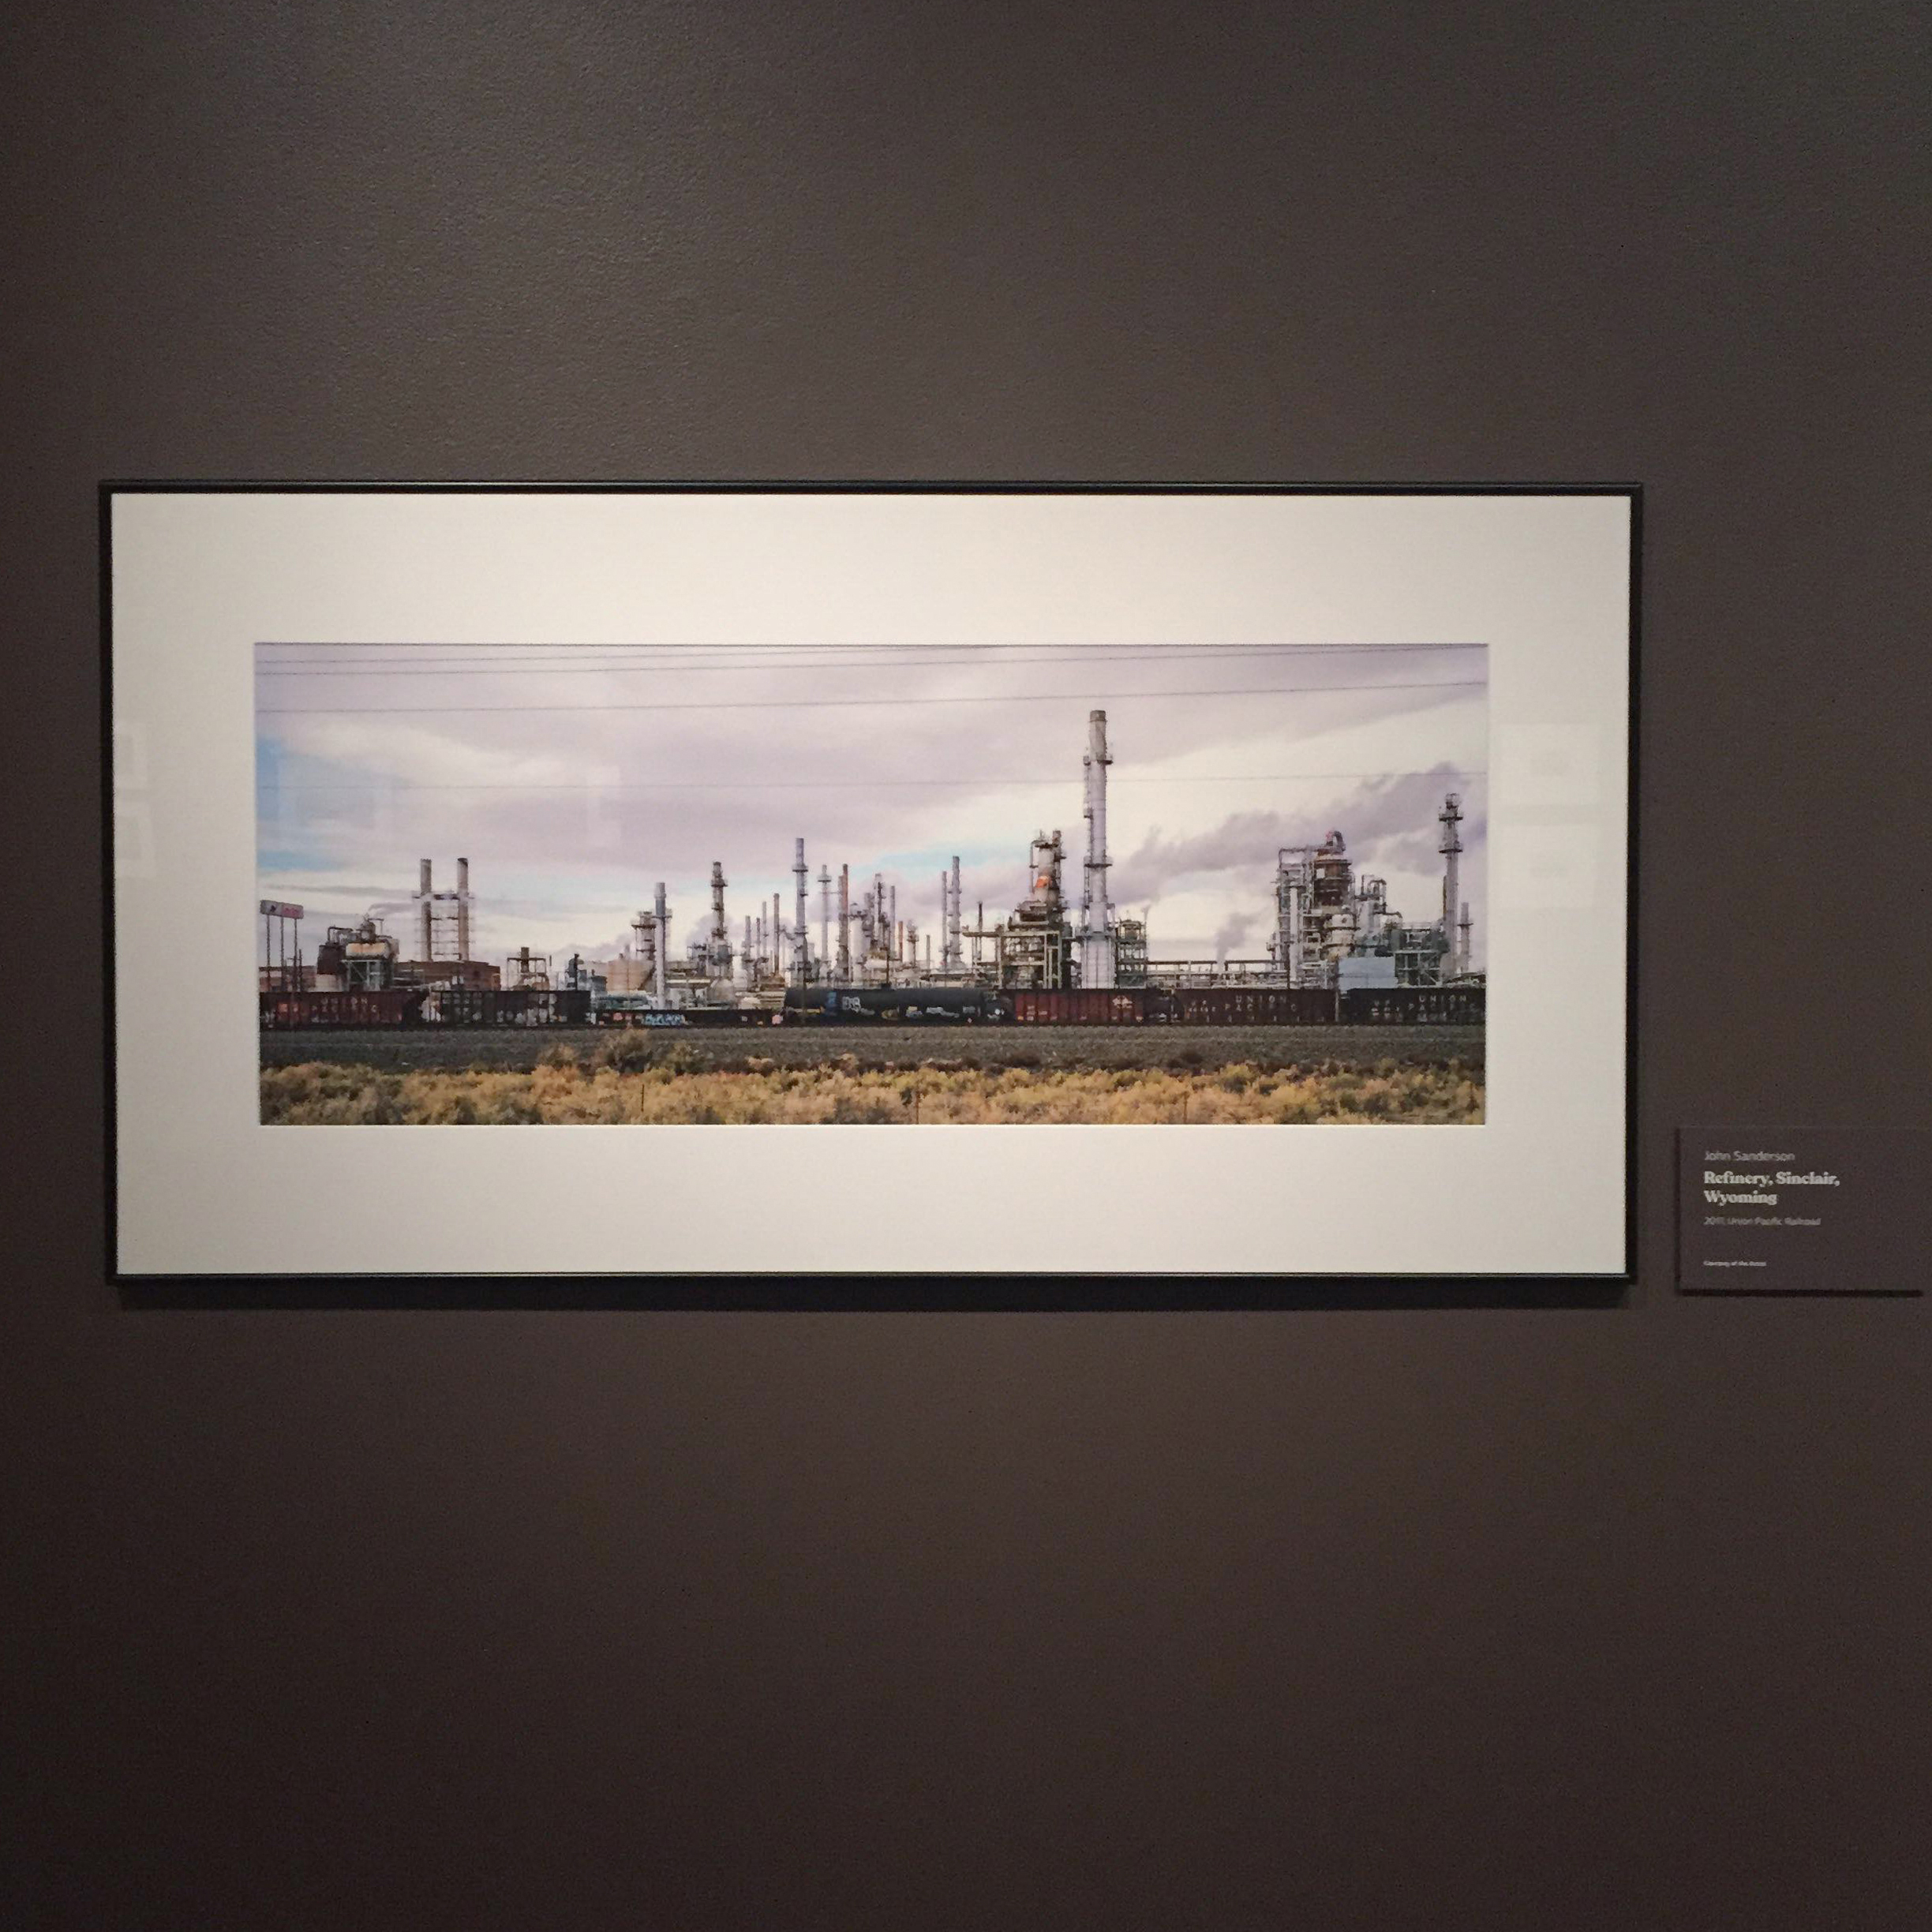 Refinery, Sinclair, Wyoming  installation view